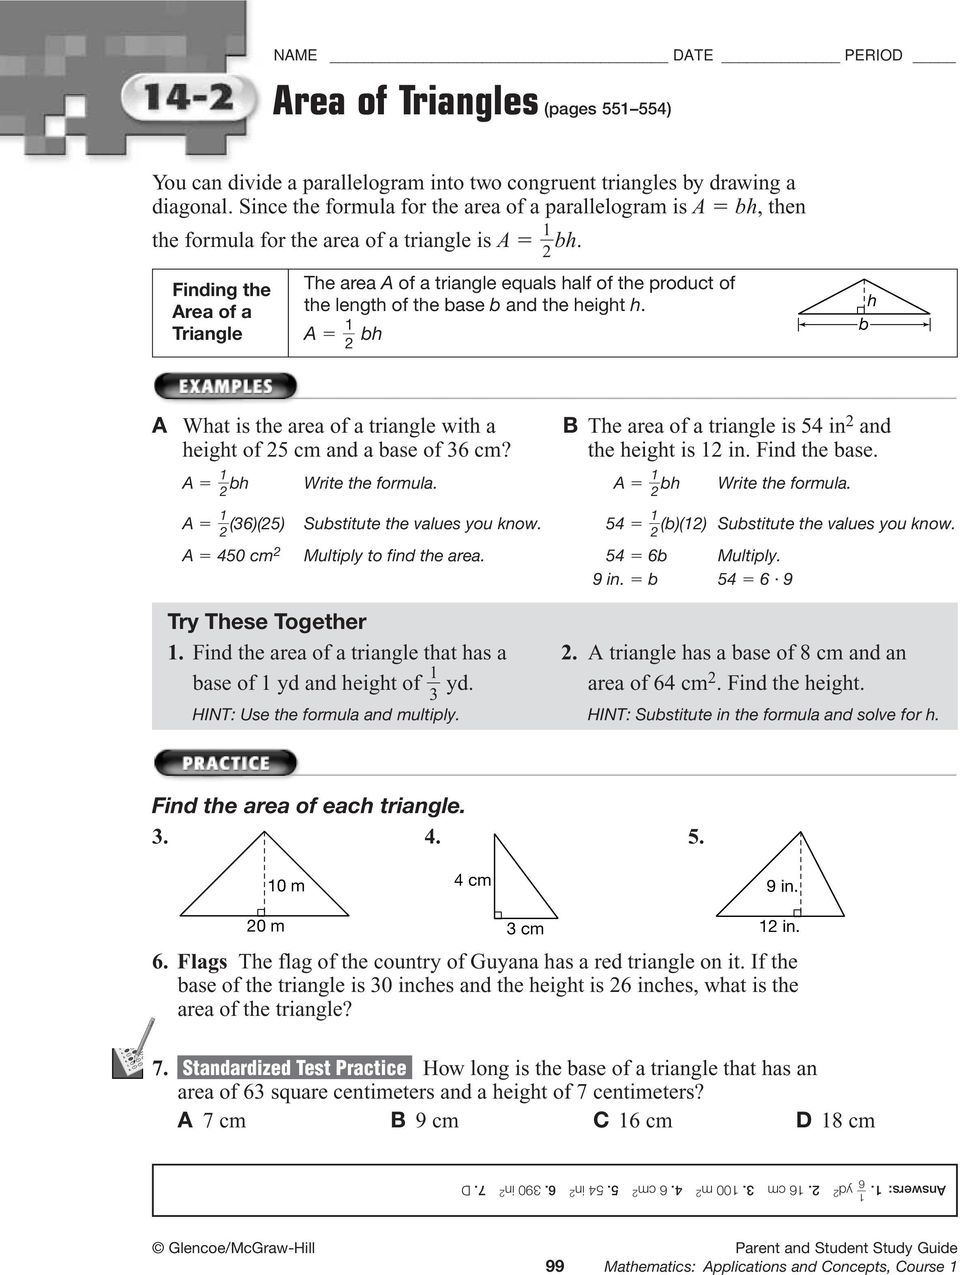 Finding the The area A of a triangle equals half of the product of Area of a the length of the base b and the height h.